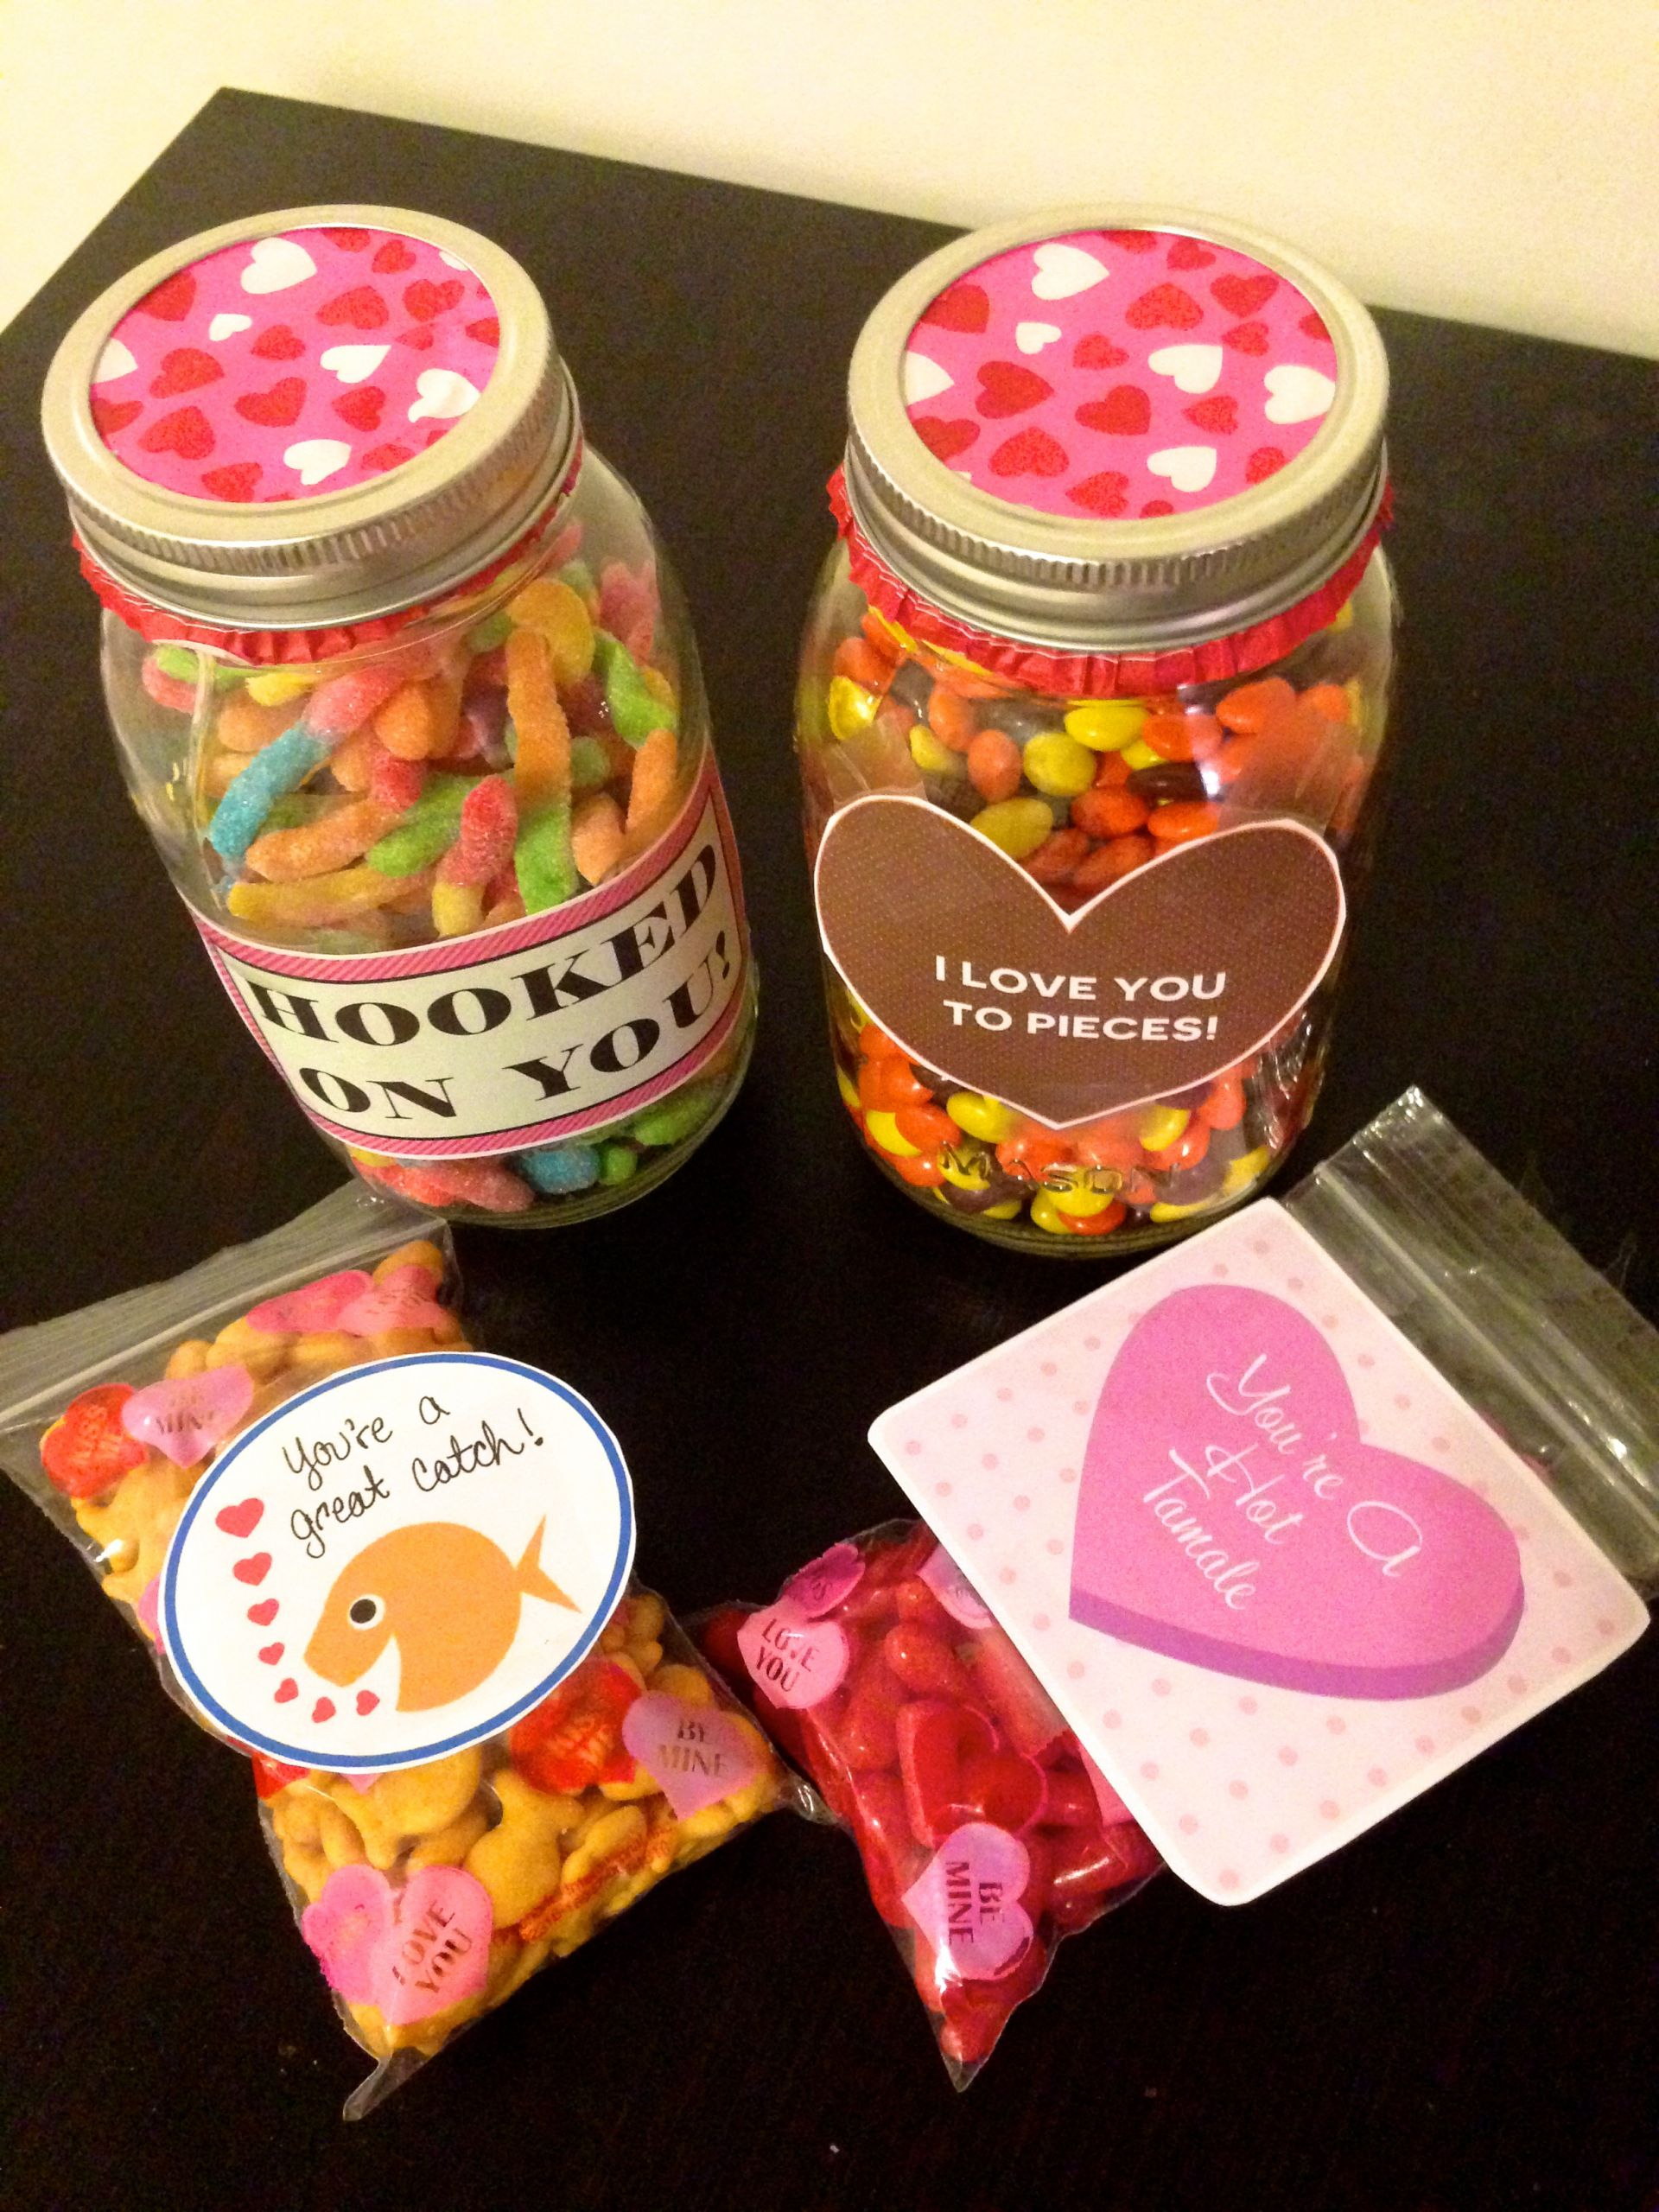 Couples Gift Ideas For Him  Romantic Gift Idea for Him – a Bud